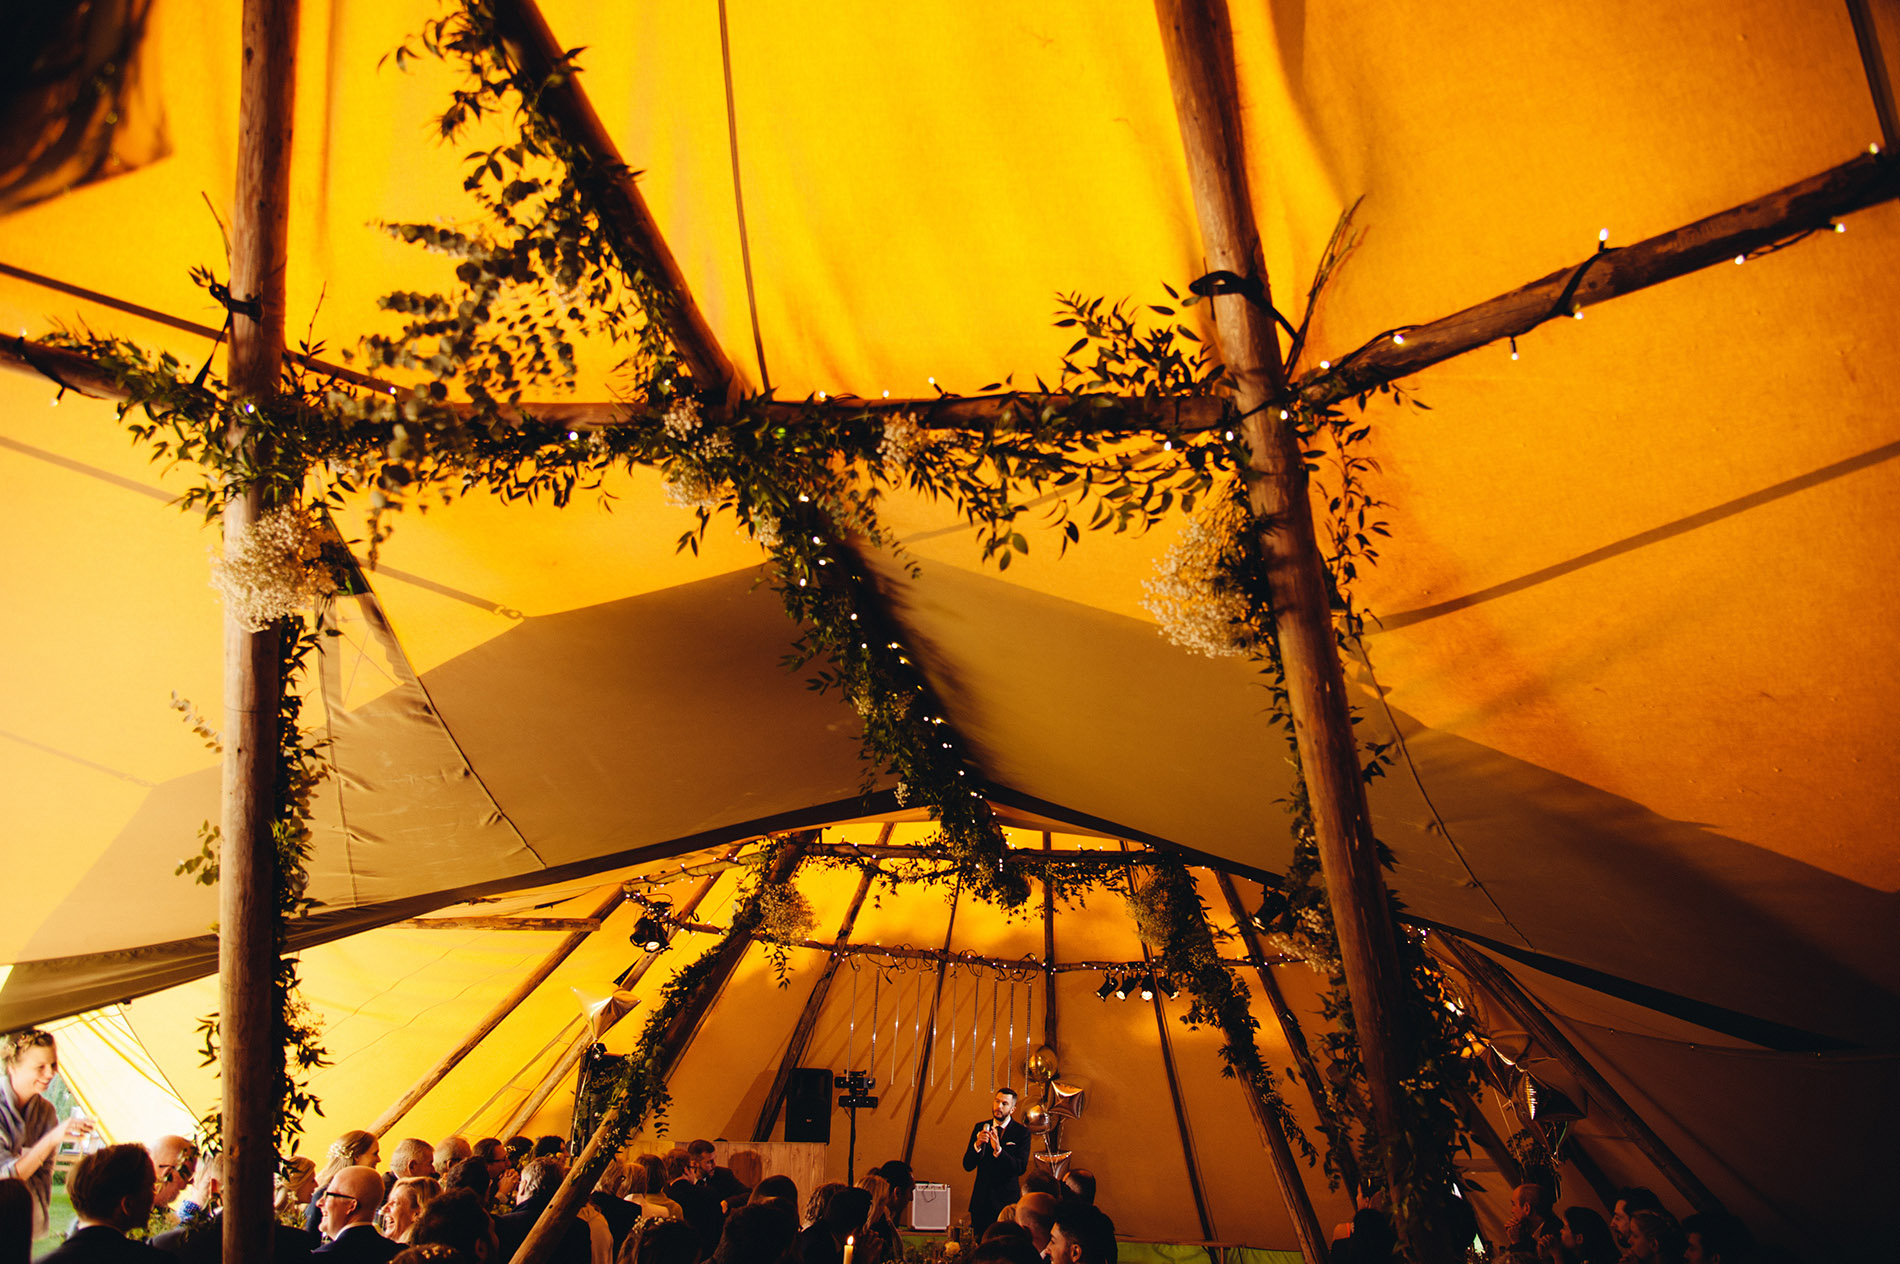 tipi with floral decoration